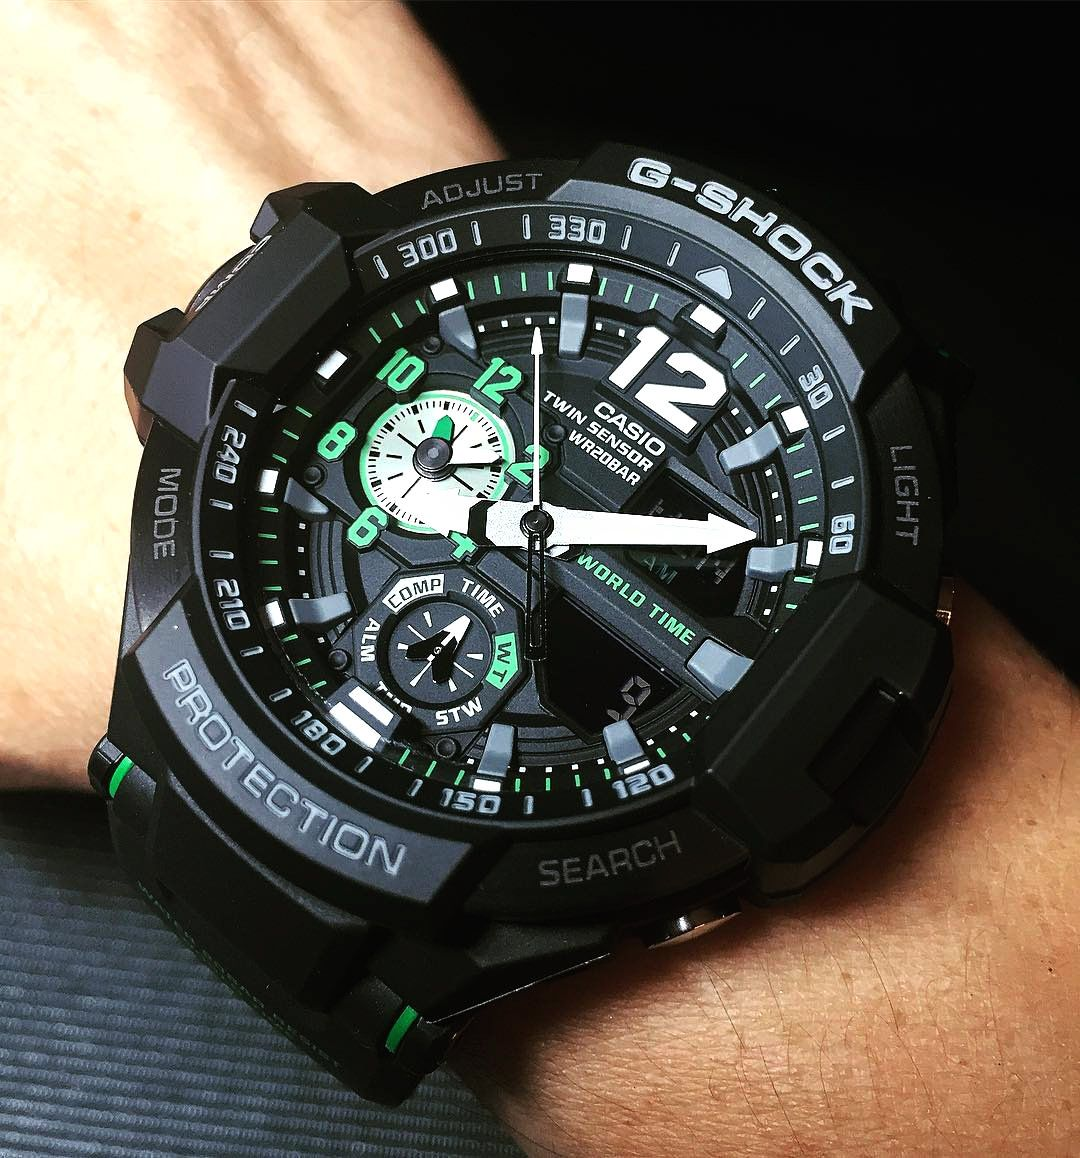 5f682d2a3071 The stainless steel and resin case features a rather busy dial (like all  Casio G-Shock watches) featuring a plethora of indicators from a digital  compass, ...